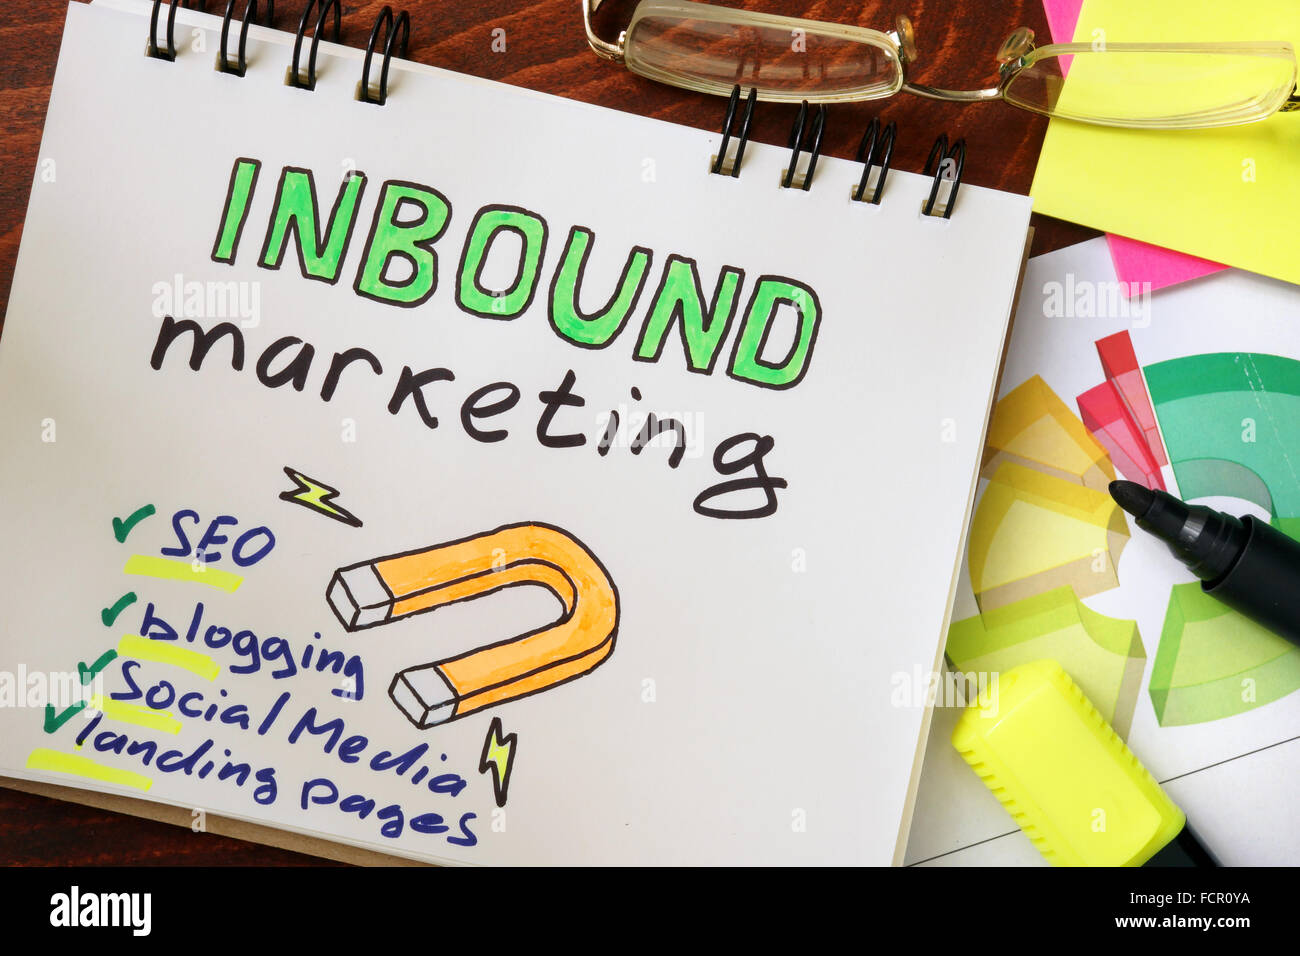 Notepad with inbound marketing on the wooden table. - Stock Image